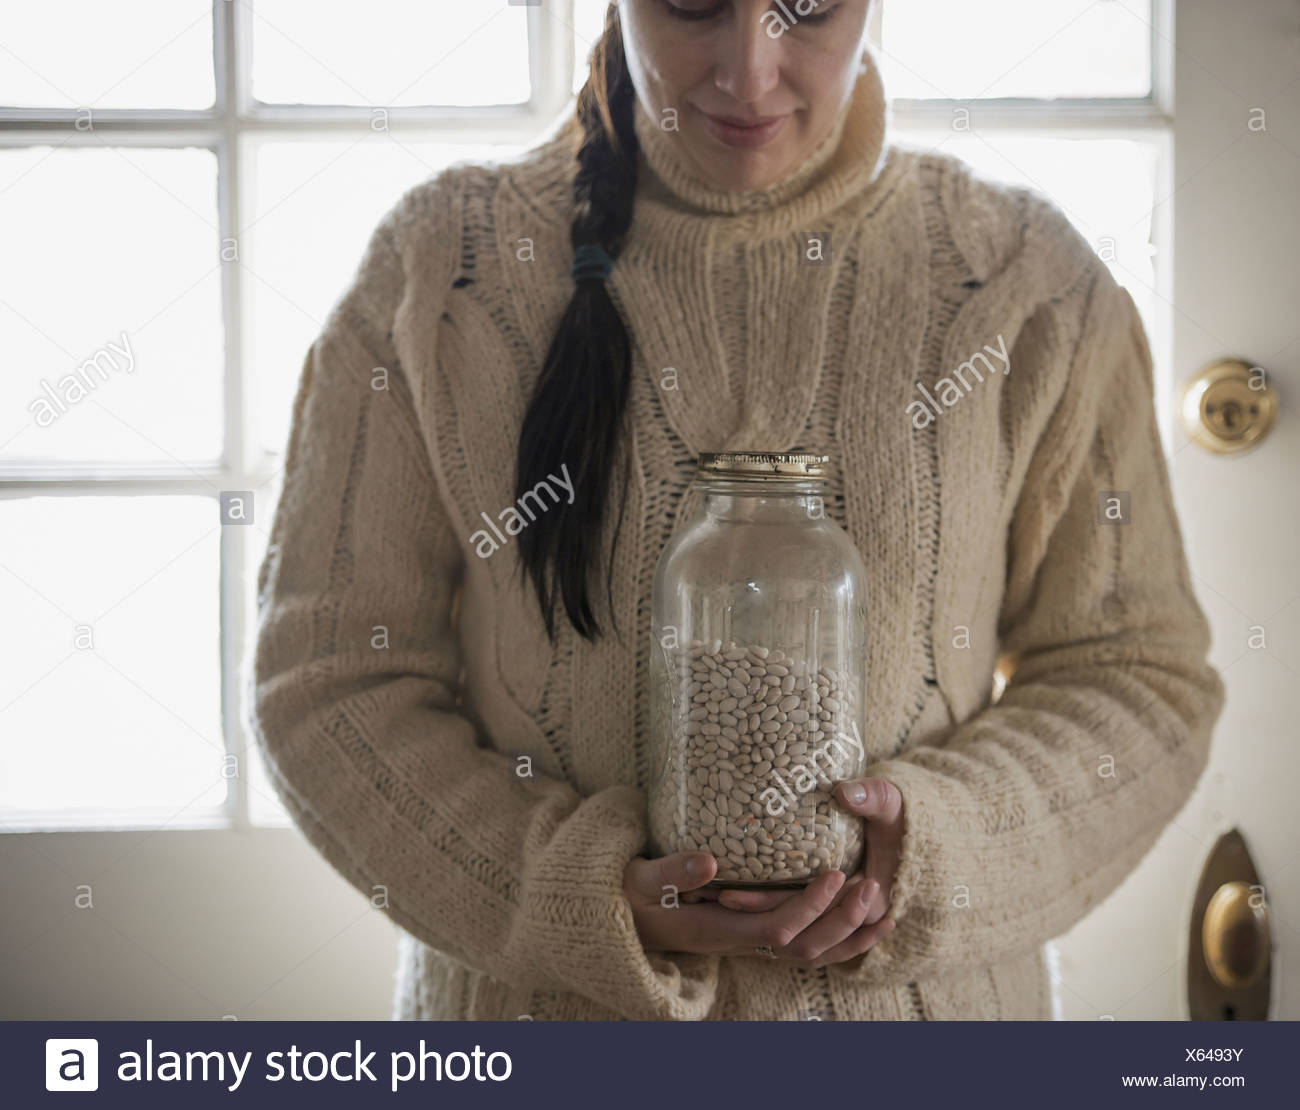 A woman in a cable knit sweater holding a glass jar of white beans - Stock Image